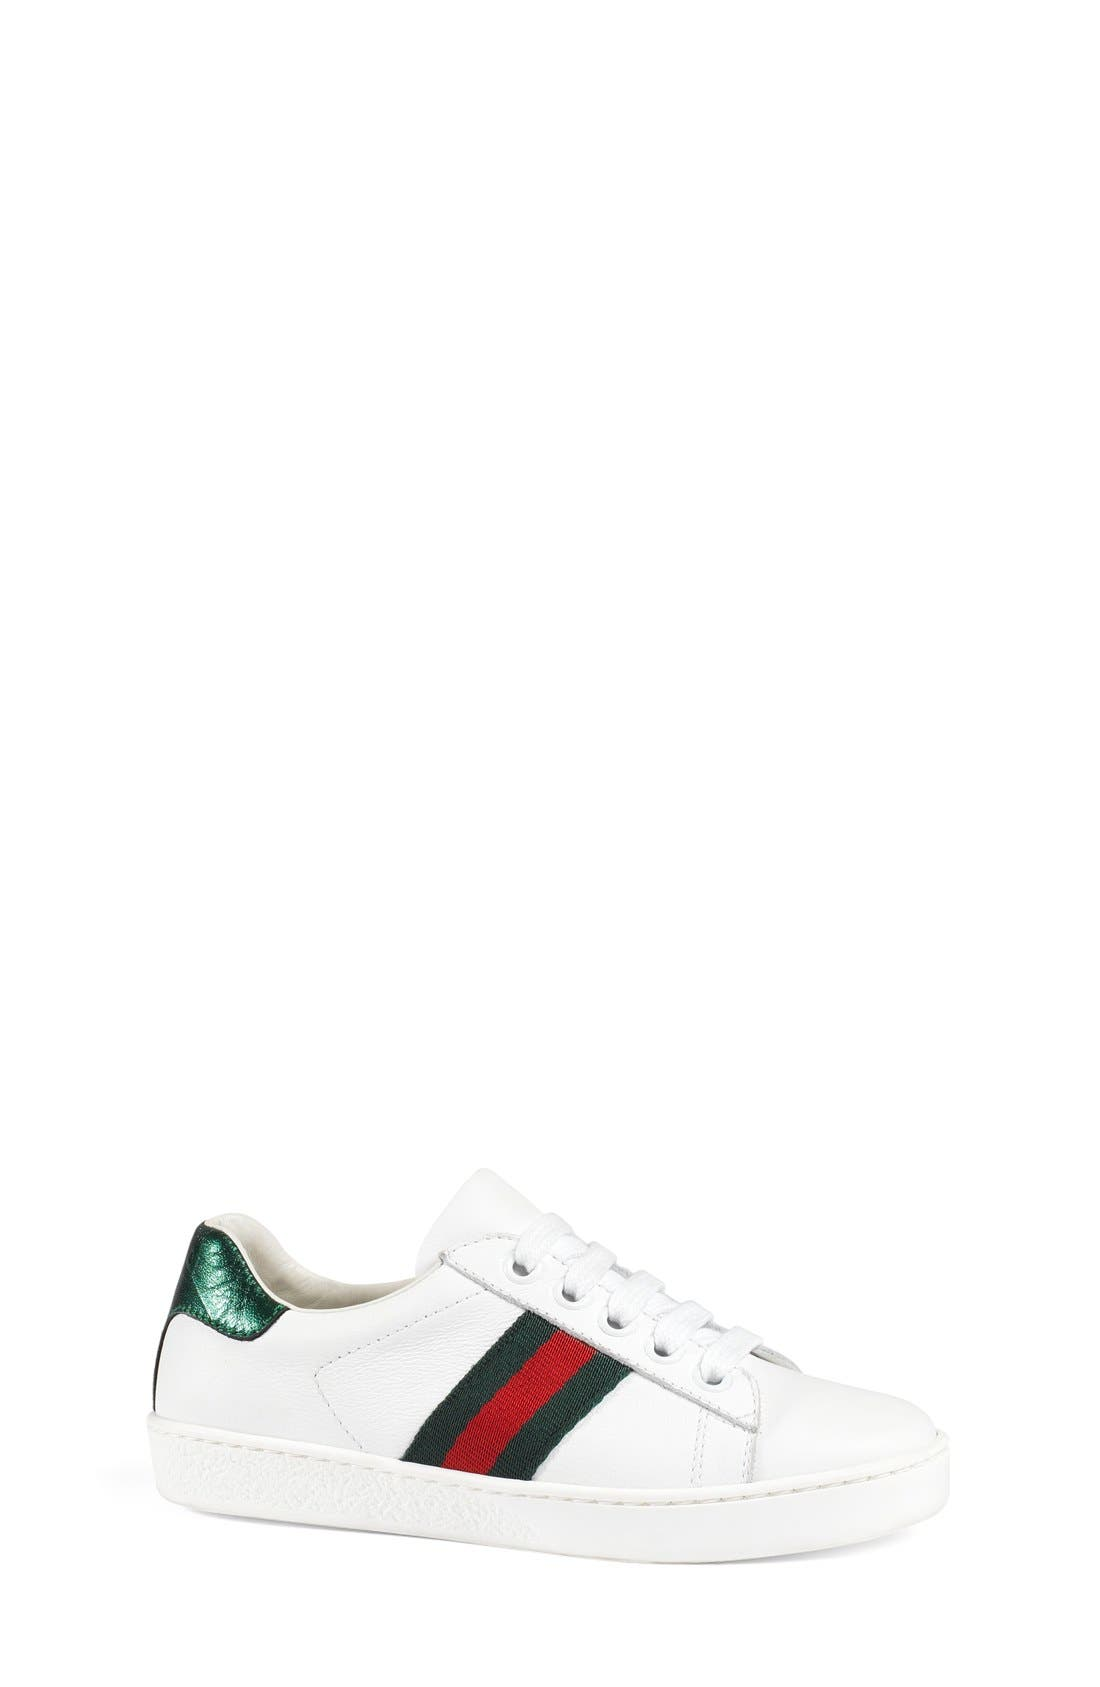 GUCCI, 'Ace' Sneaker, Alternate thumbnail 2, color, WHITE/ GREEN